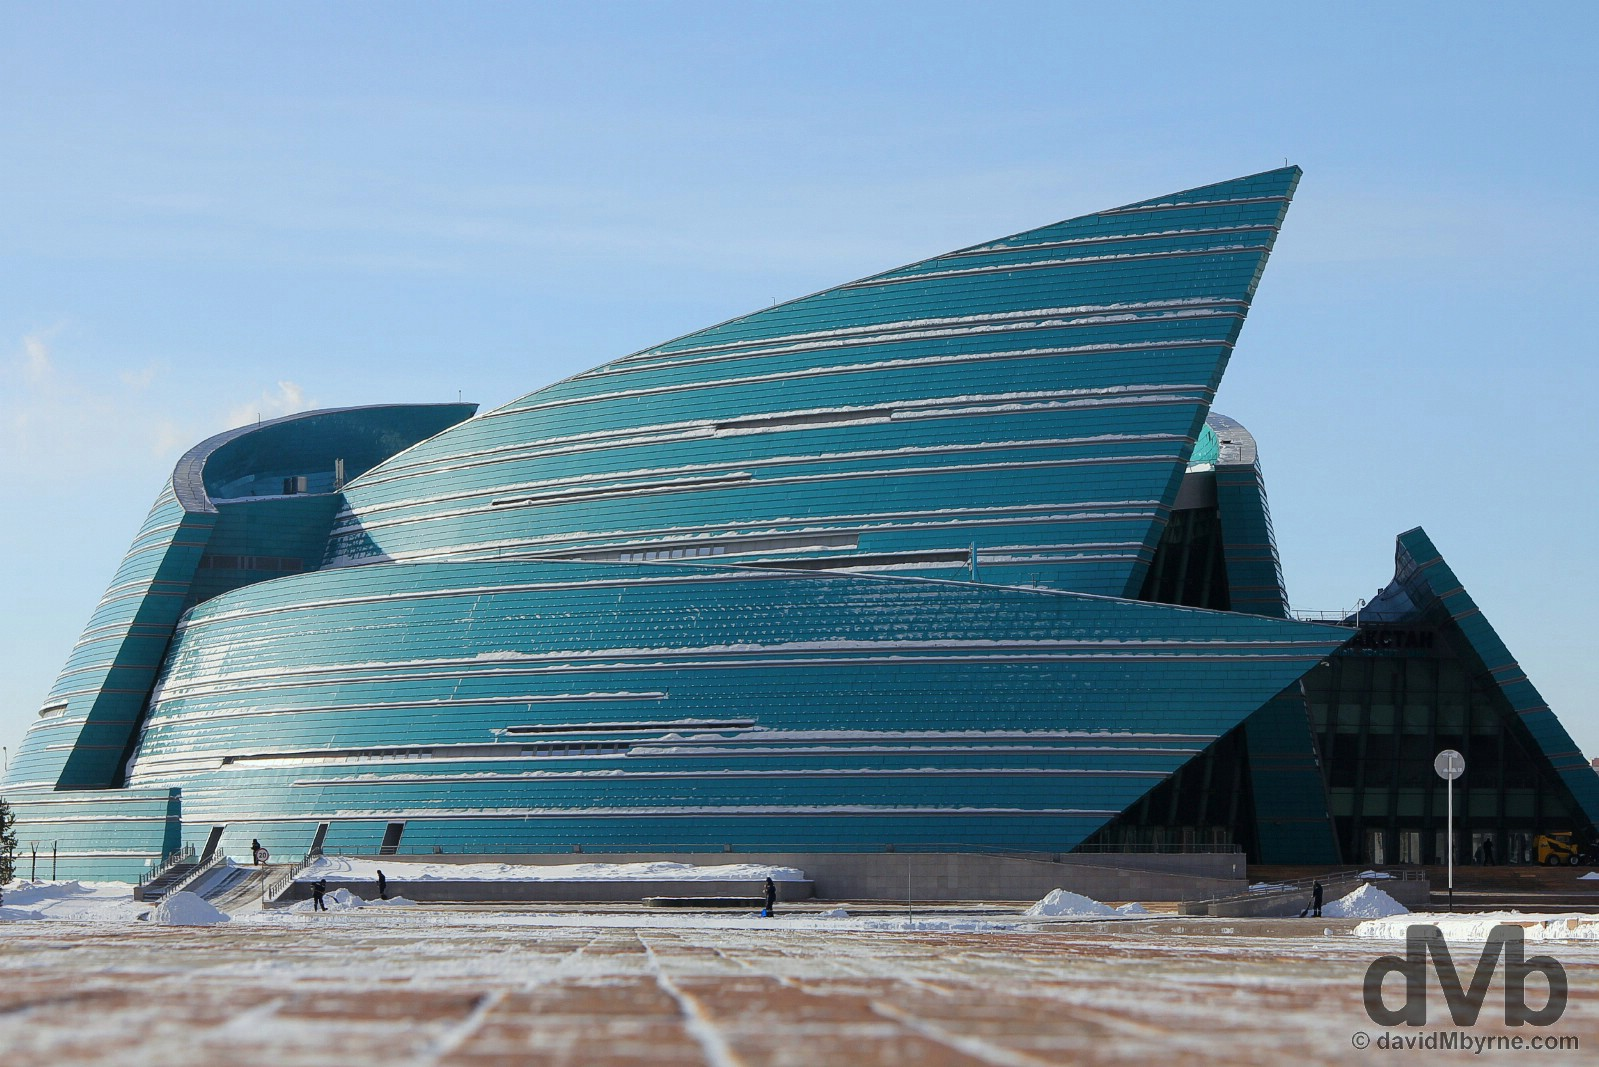 Clearing snow at the base of the Central Concert Hall in Astana, Kazakhstan. February 18, 2015.